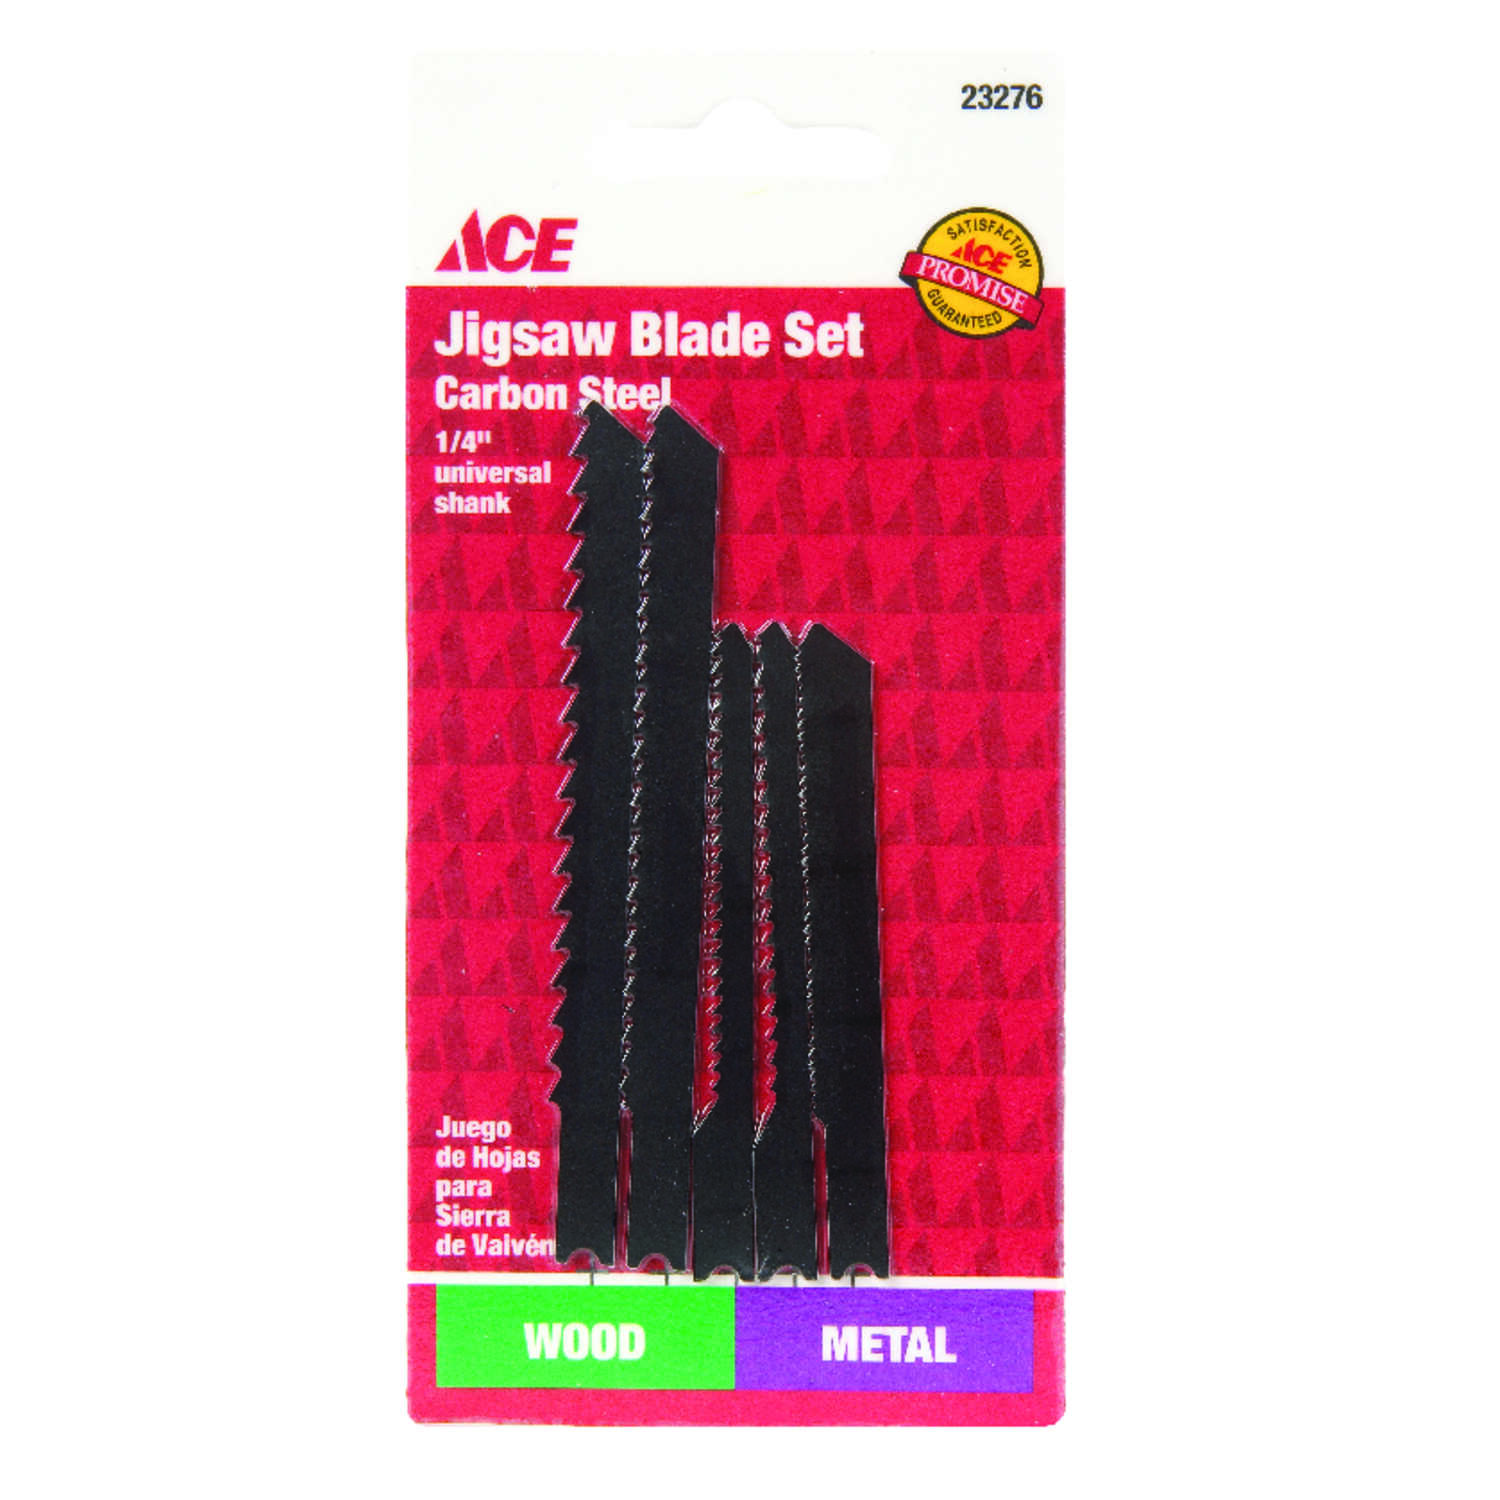 Ace  High Carbon Steel  Universal  Jig Saw Blade Set  5 pk